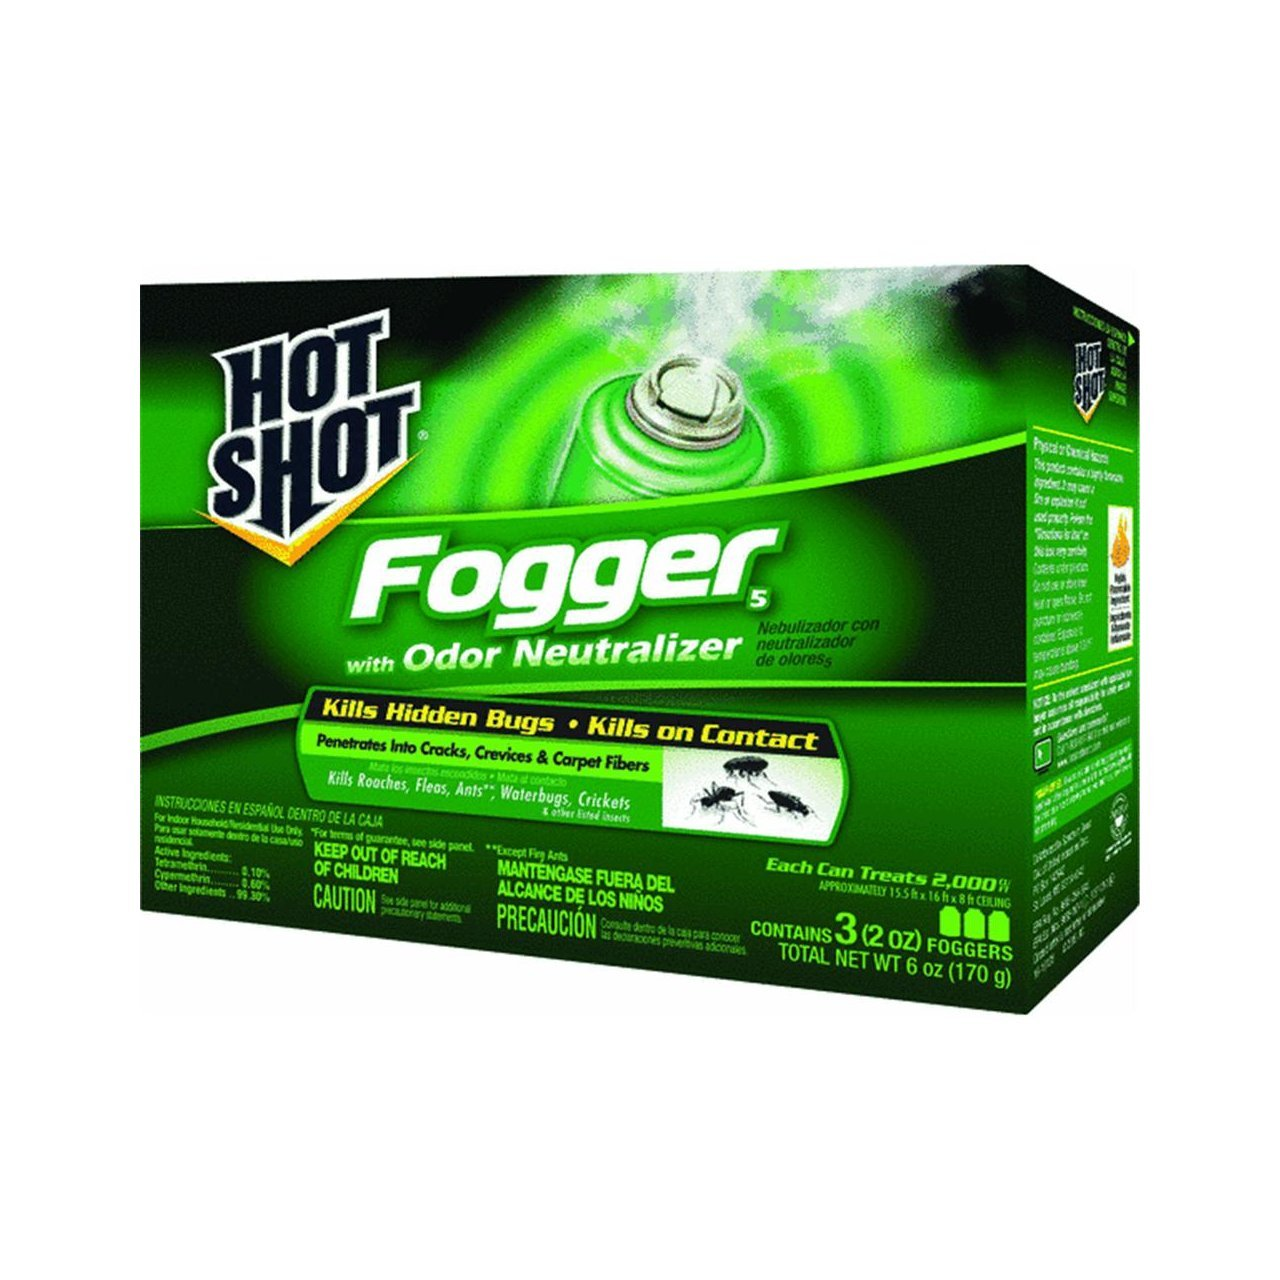 Hot Shot Foggers With Odor Neutralizer Insecticide, 3-Count